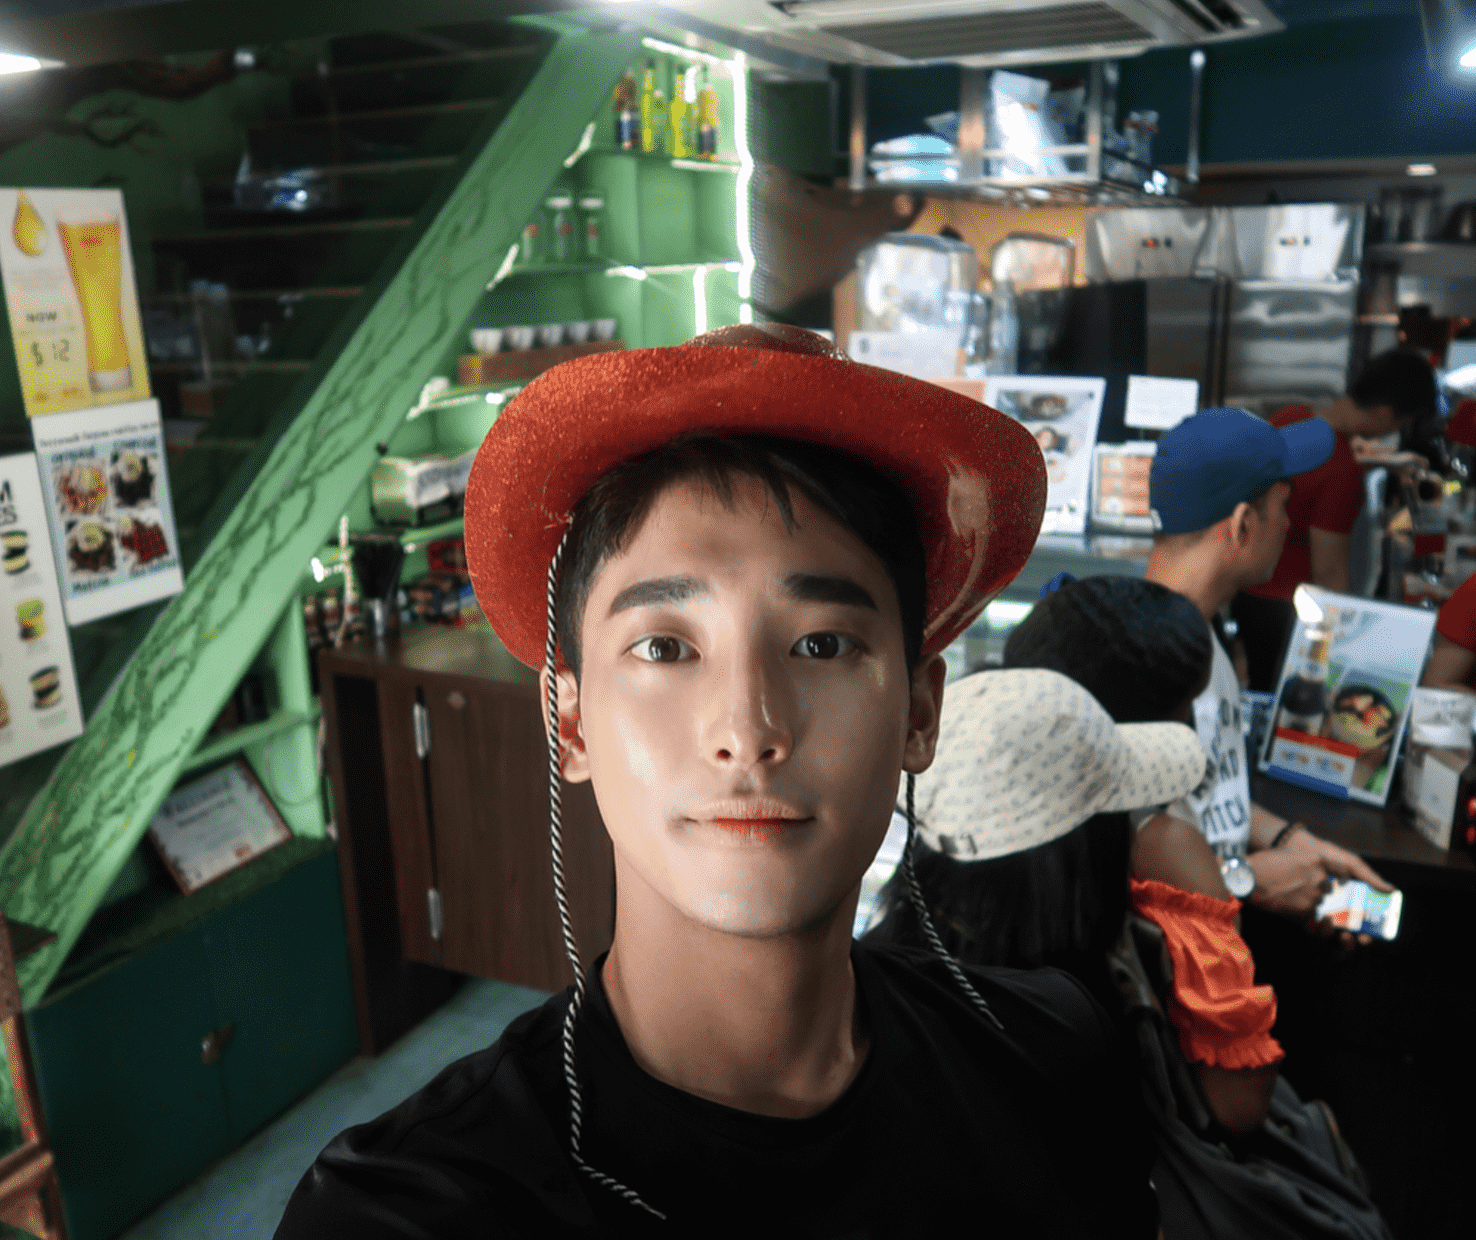 Just sharing a photo from  @yyunwoo , one of our favorite Korean Instagram models whom you may want to follow! Here he's seen at the Selfie Coffee in Singapore (싱가포르)! Image credit:  @yyunwoo  on Instagram